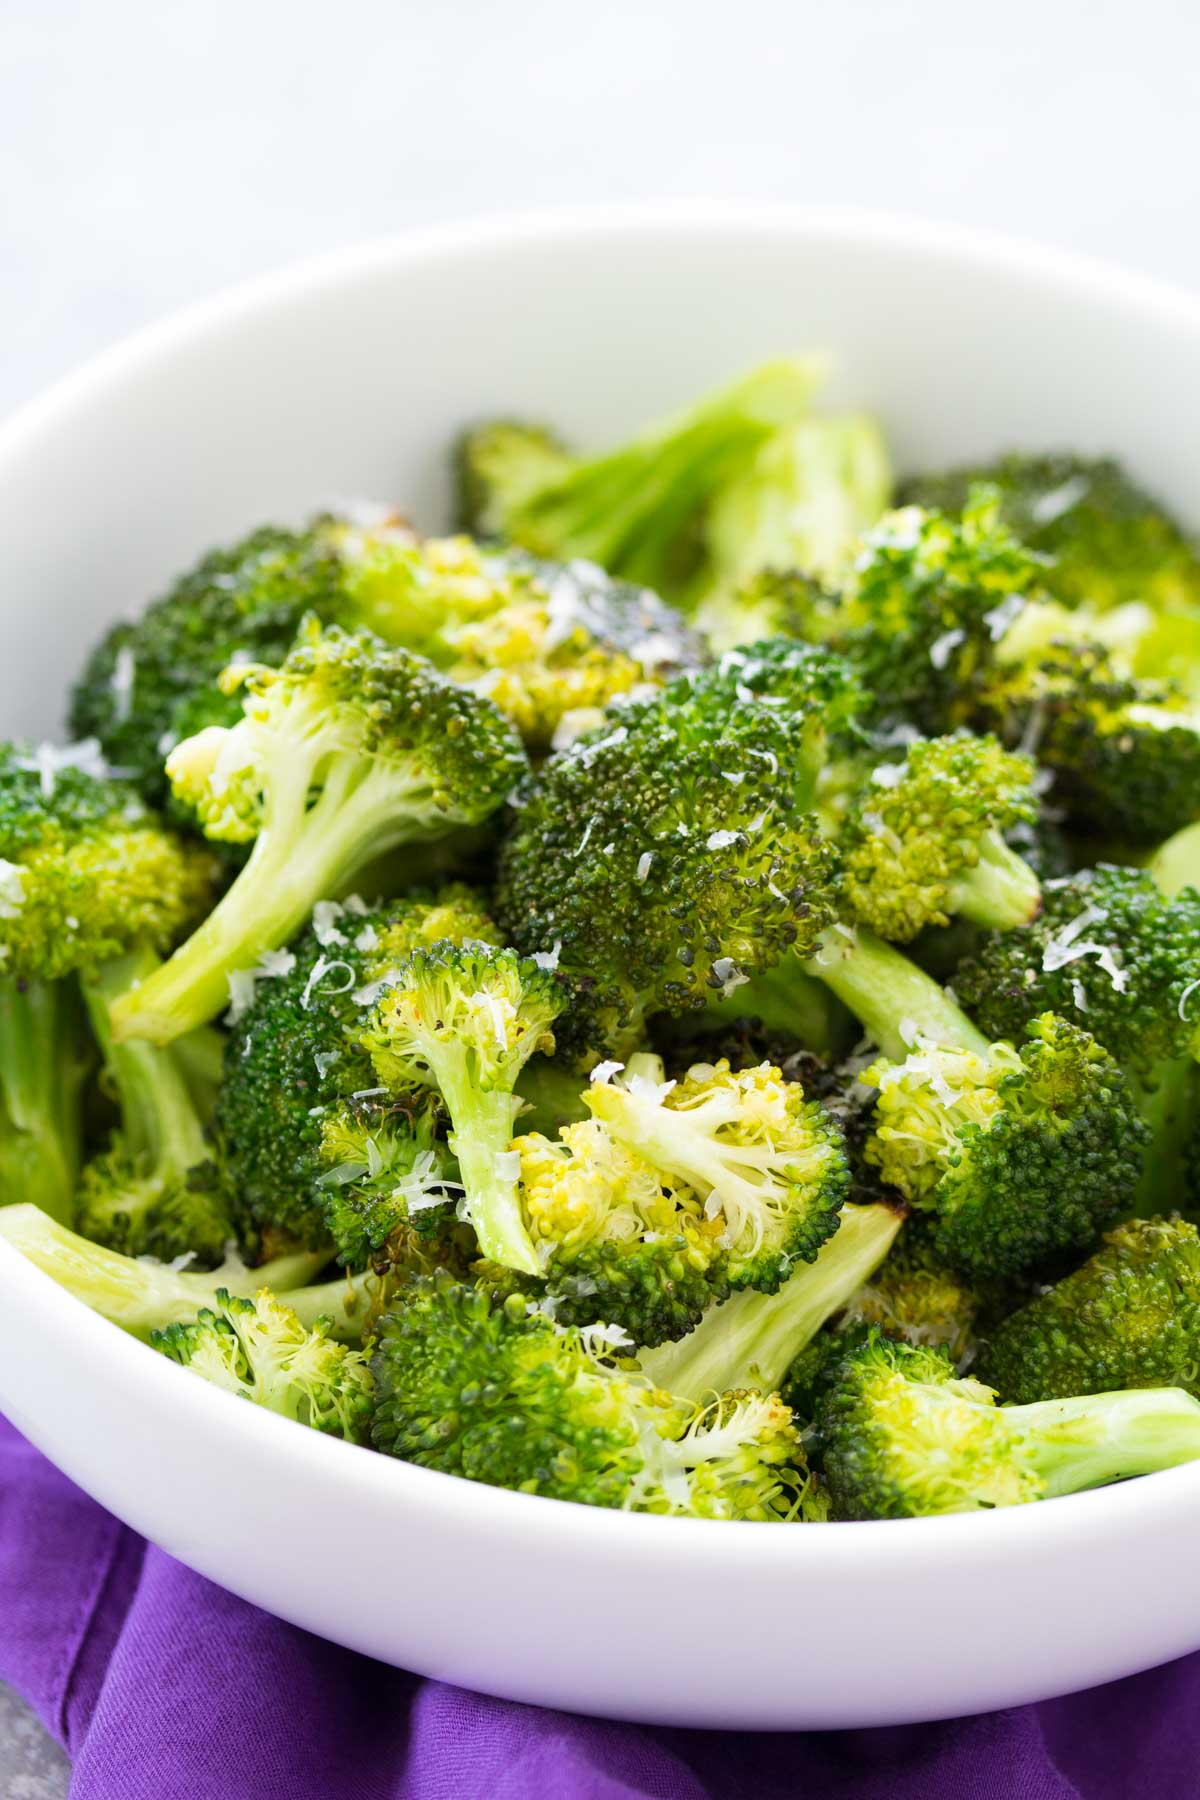 How to roast broccoli in your oven. An easy roasted broccoli recipe with garlic and Parmesan cheese options. A healthy side dish for any meal!